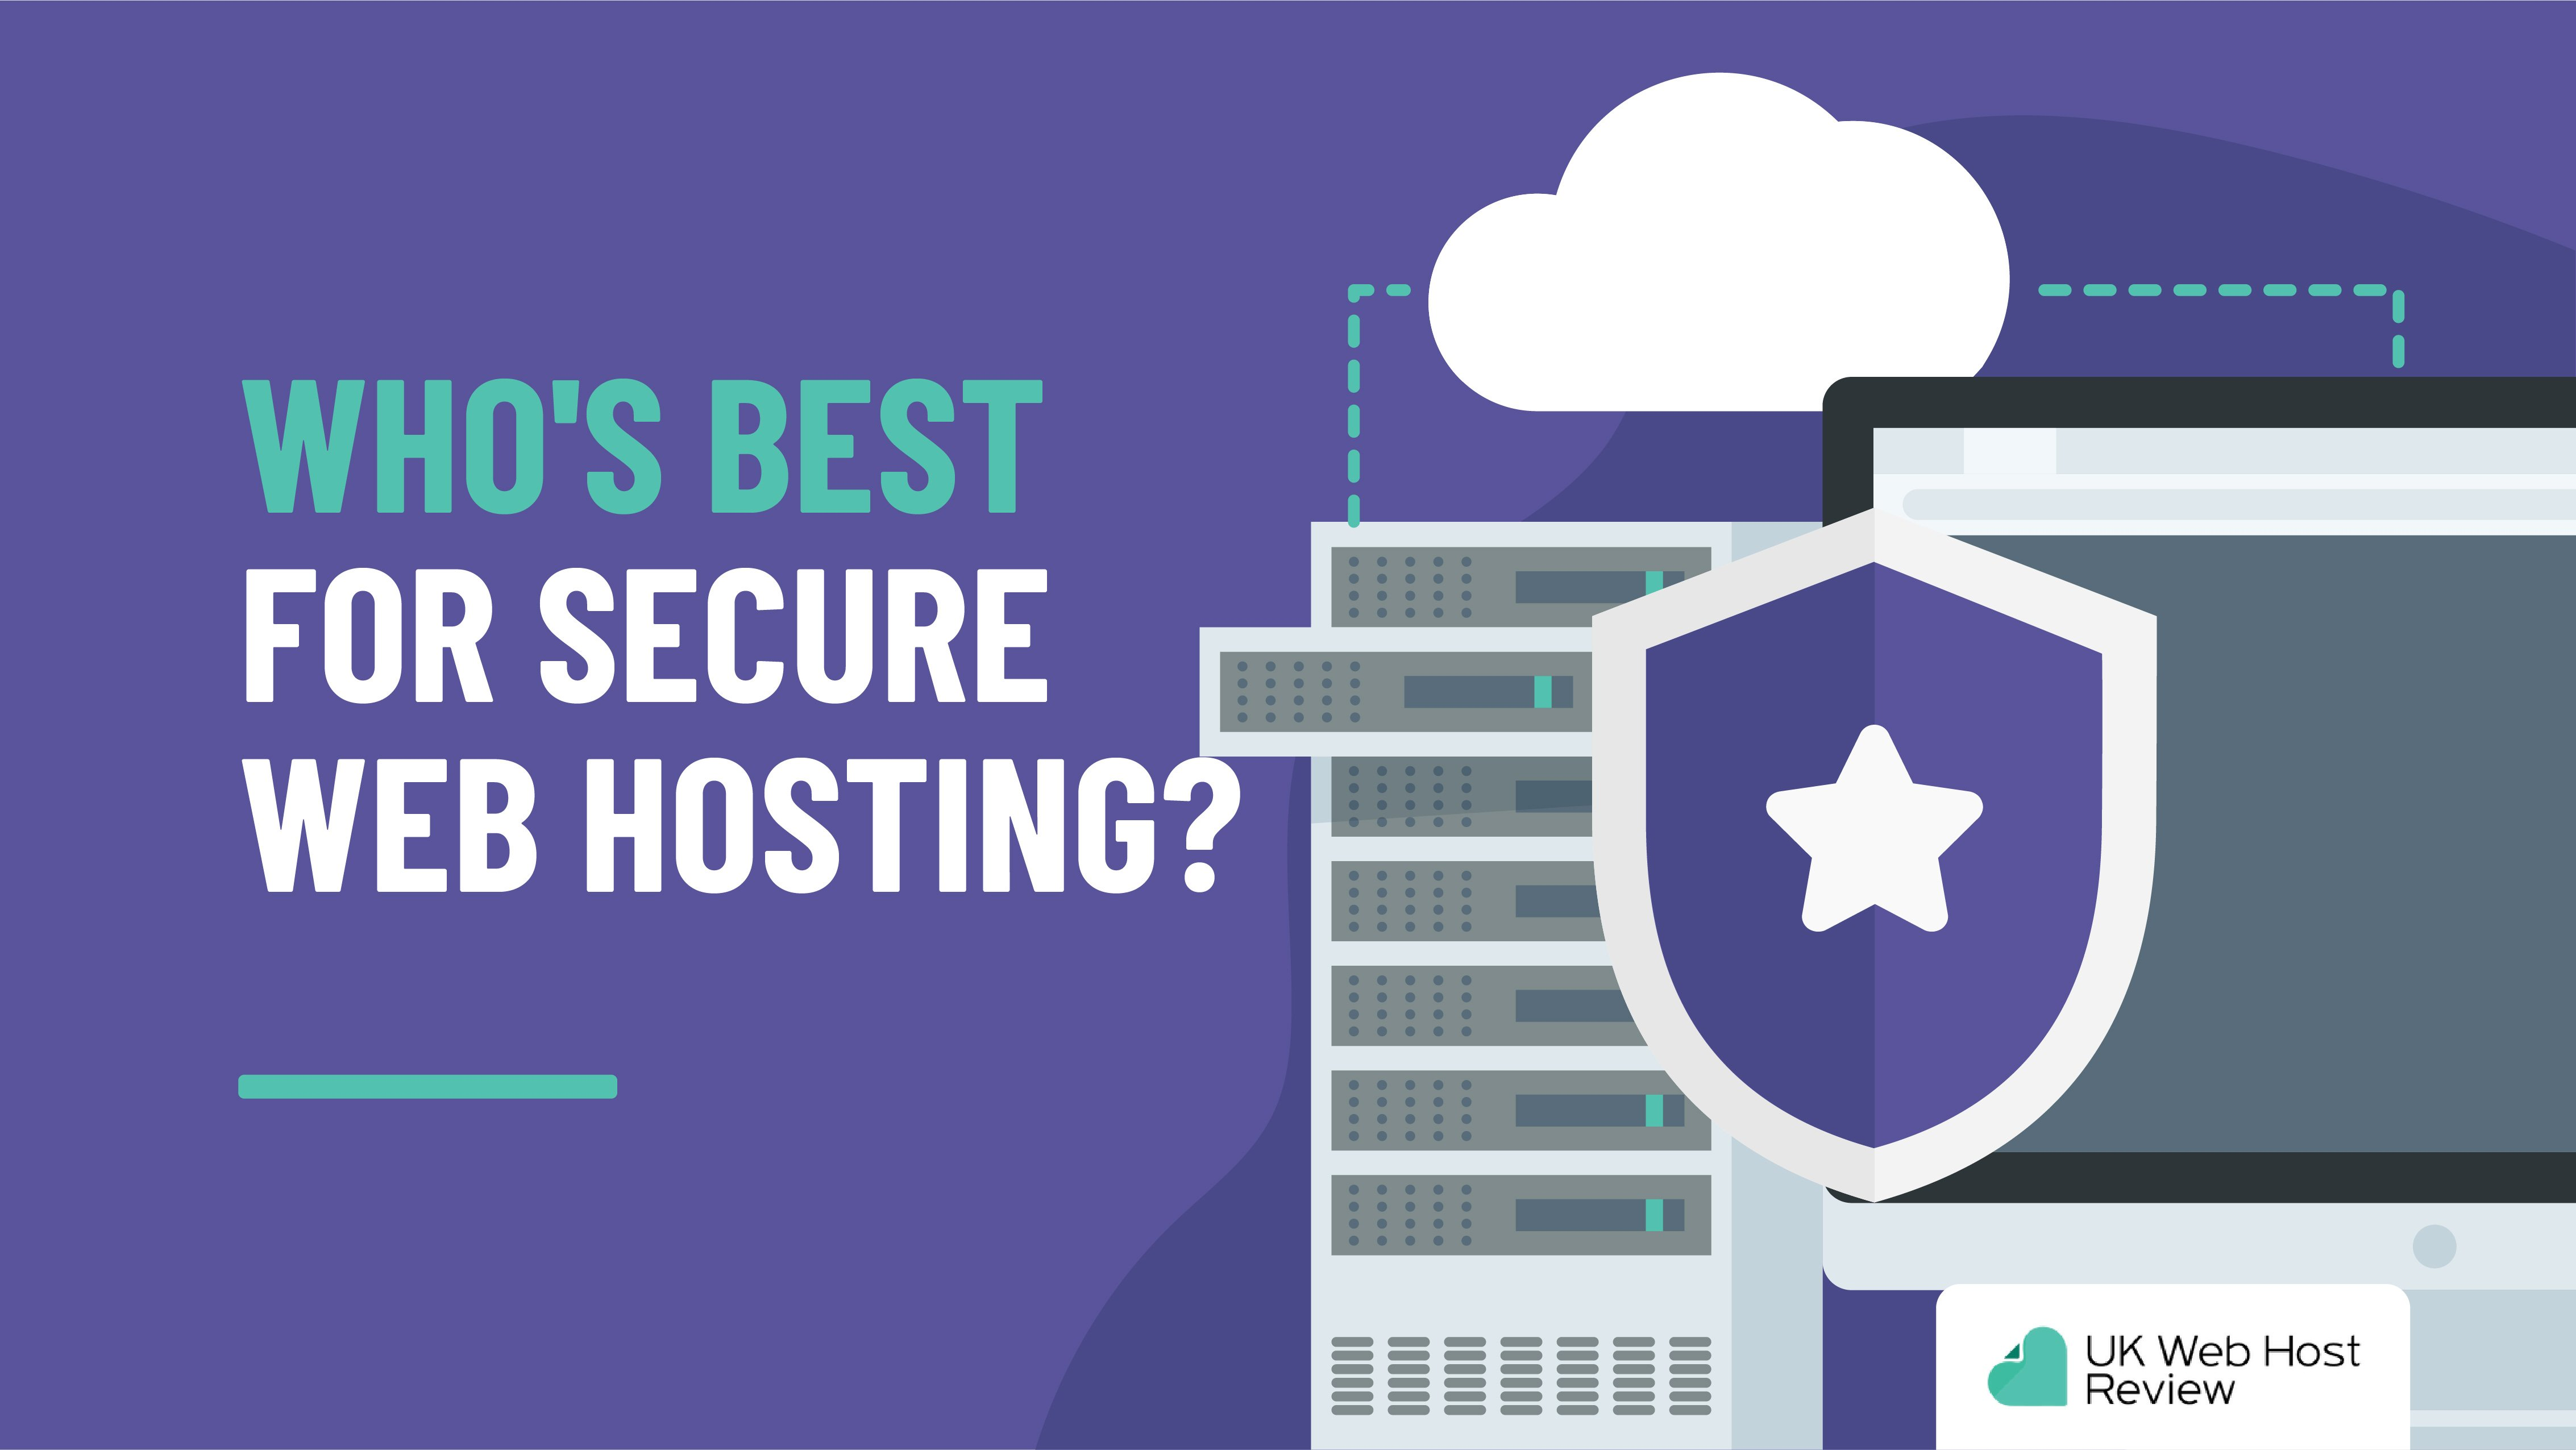 Who's Best For Secure Web Hosting?